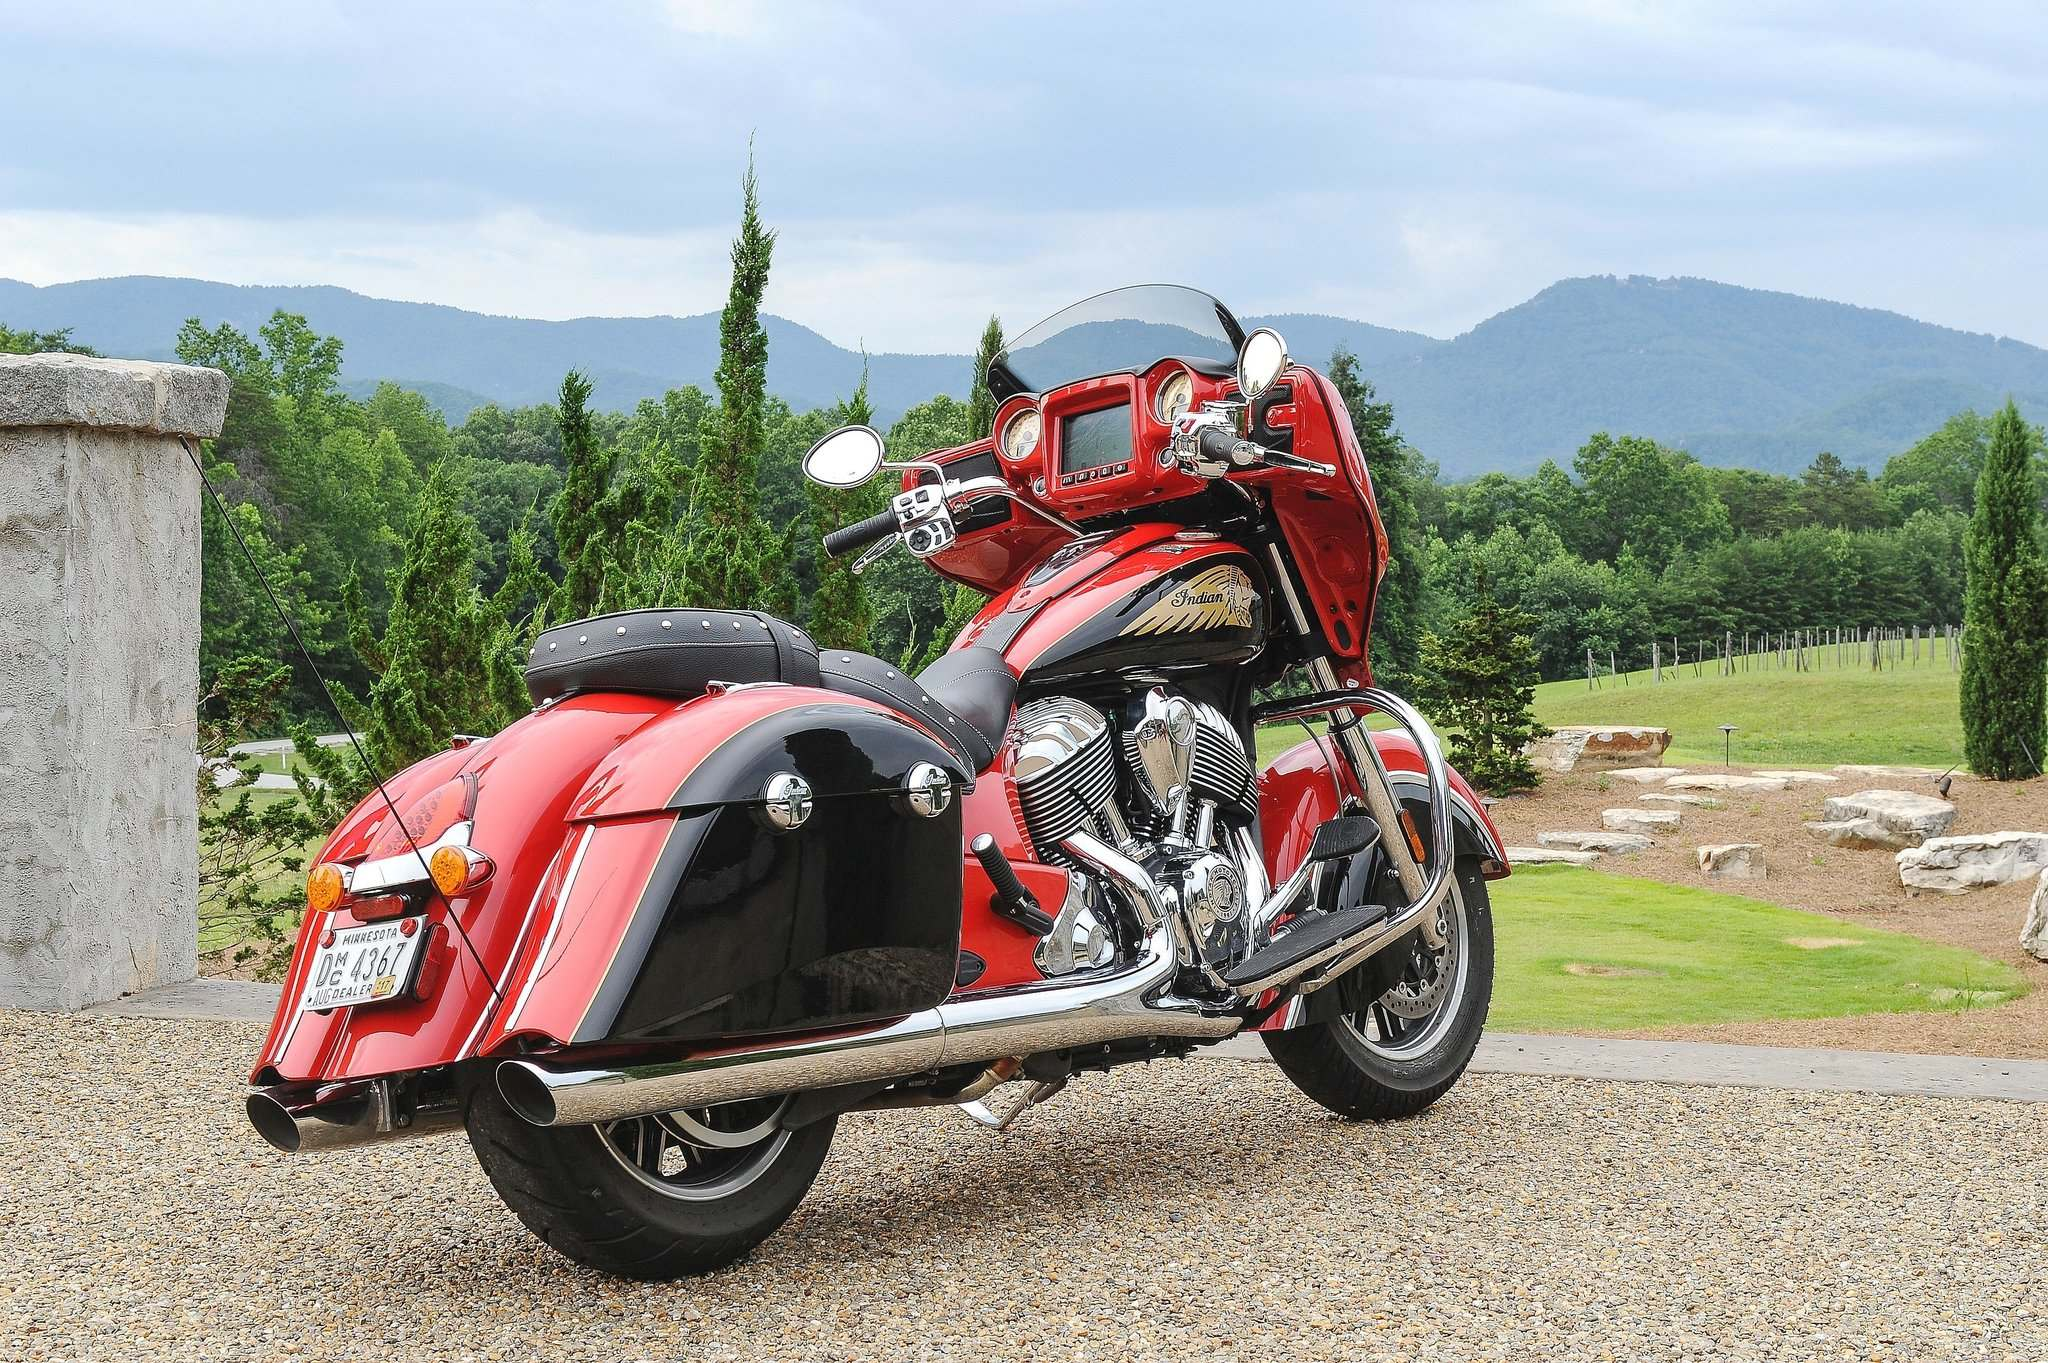 PHOTOS BY DAVID BOOTH / POSTMEDIA NETWORK INC.The 2017 Indian Chieftain has the look of a vintage motorcycle blended with modern performance and comfort features.